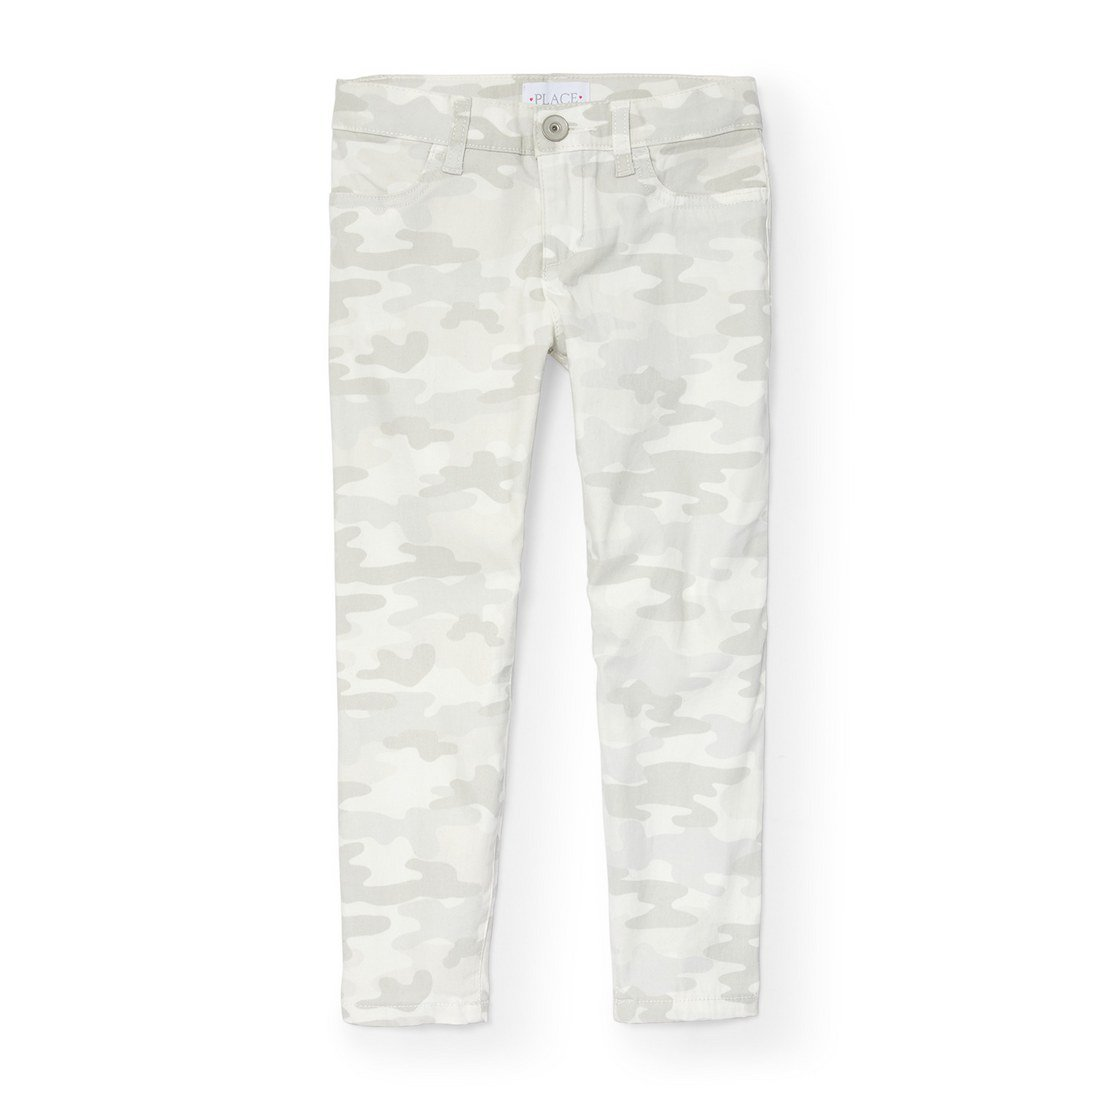 The Children's Place Big Girls' Printed Skinny Jegging, Simplywht 6372, 5 by The Children's Place (Image #1)